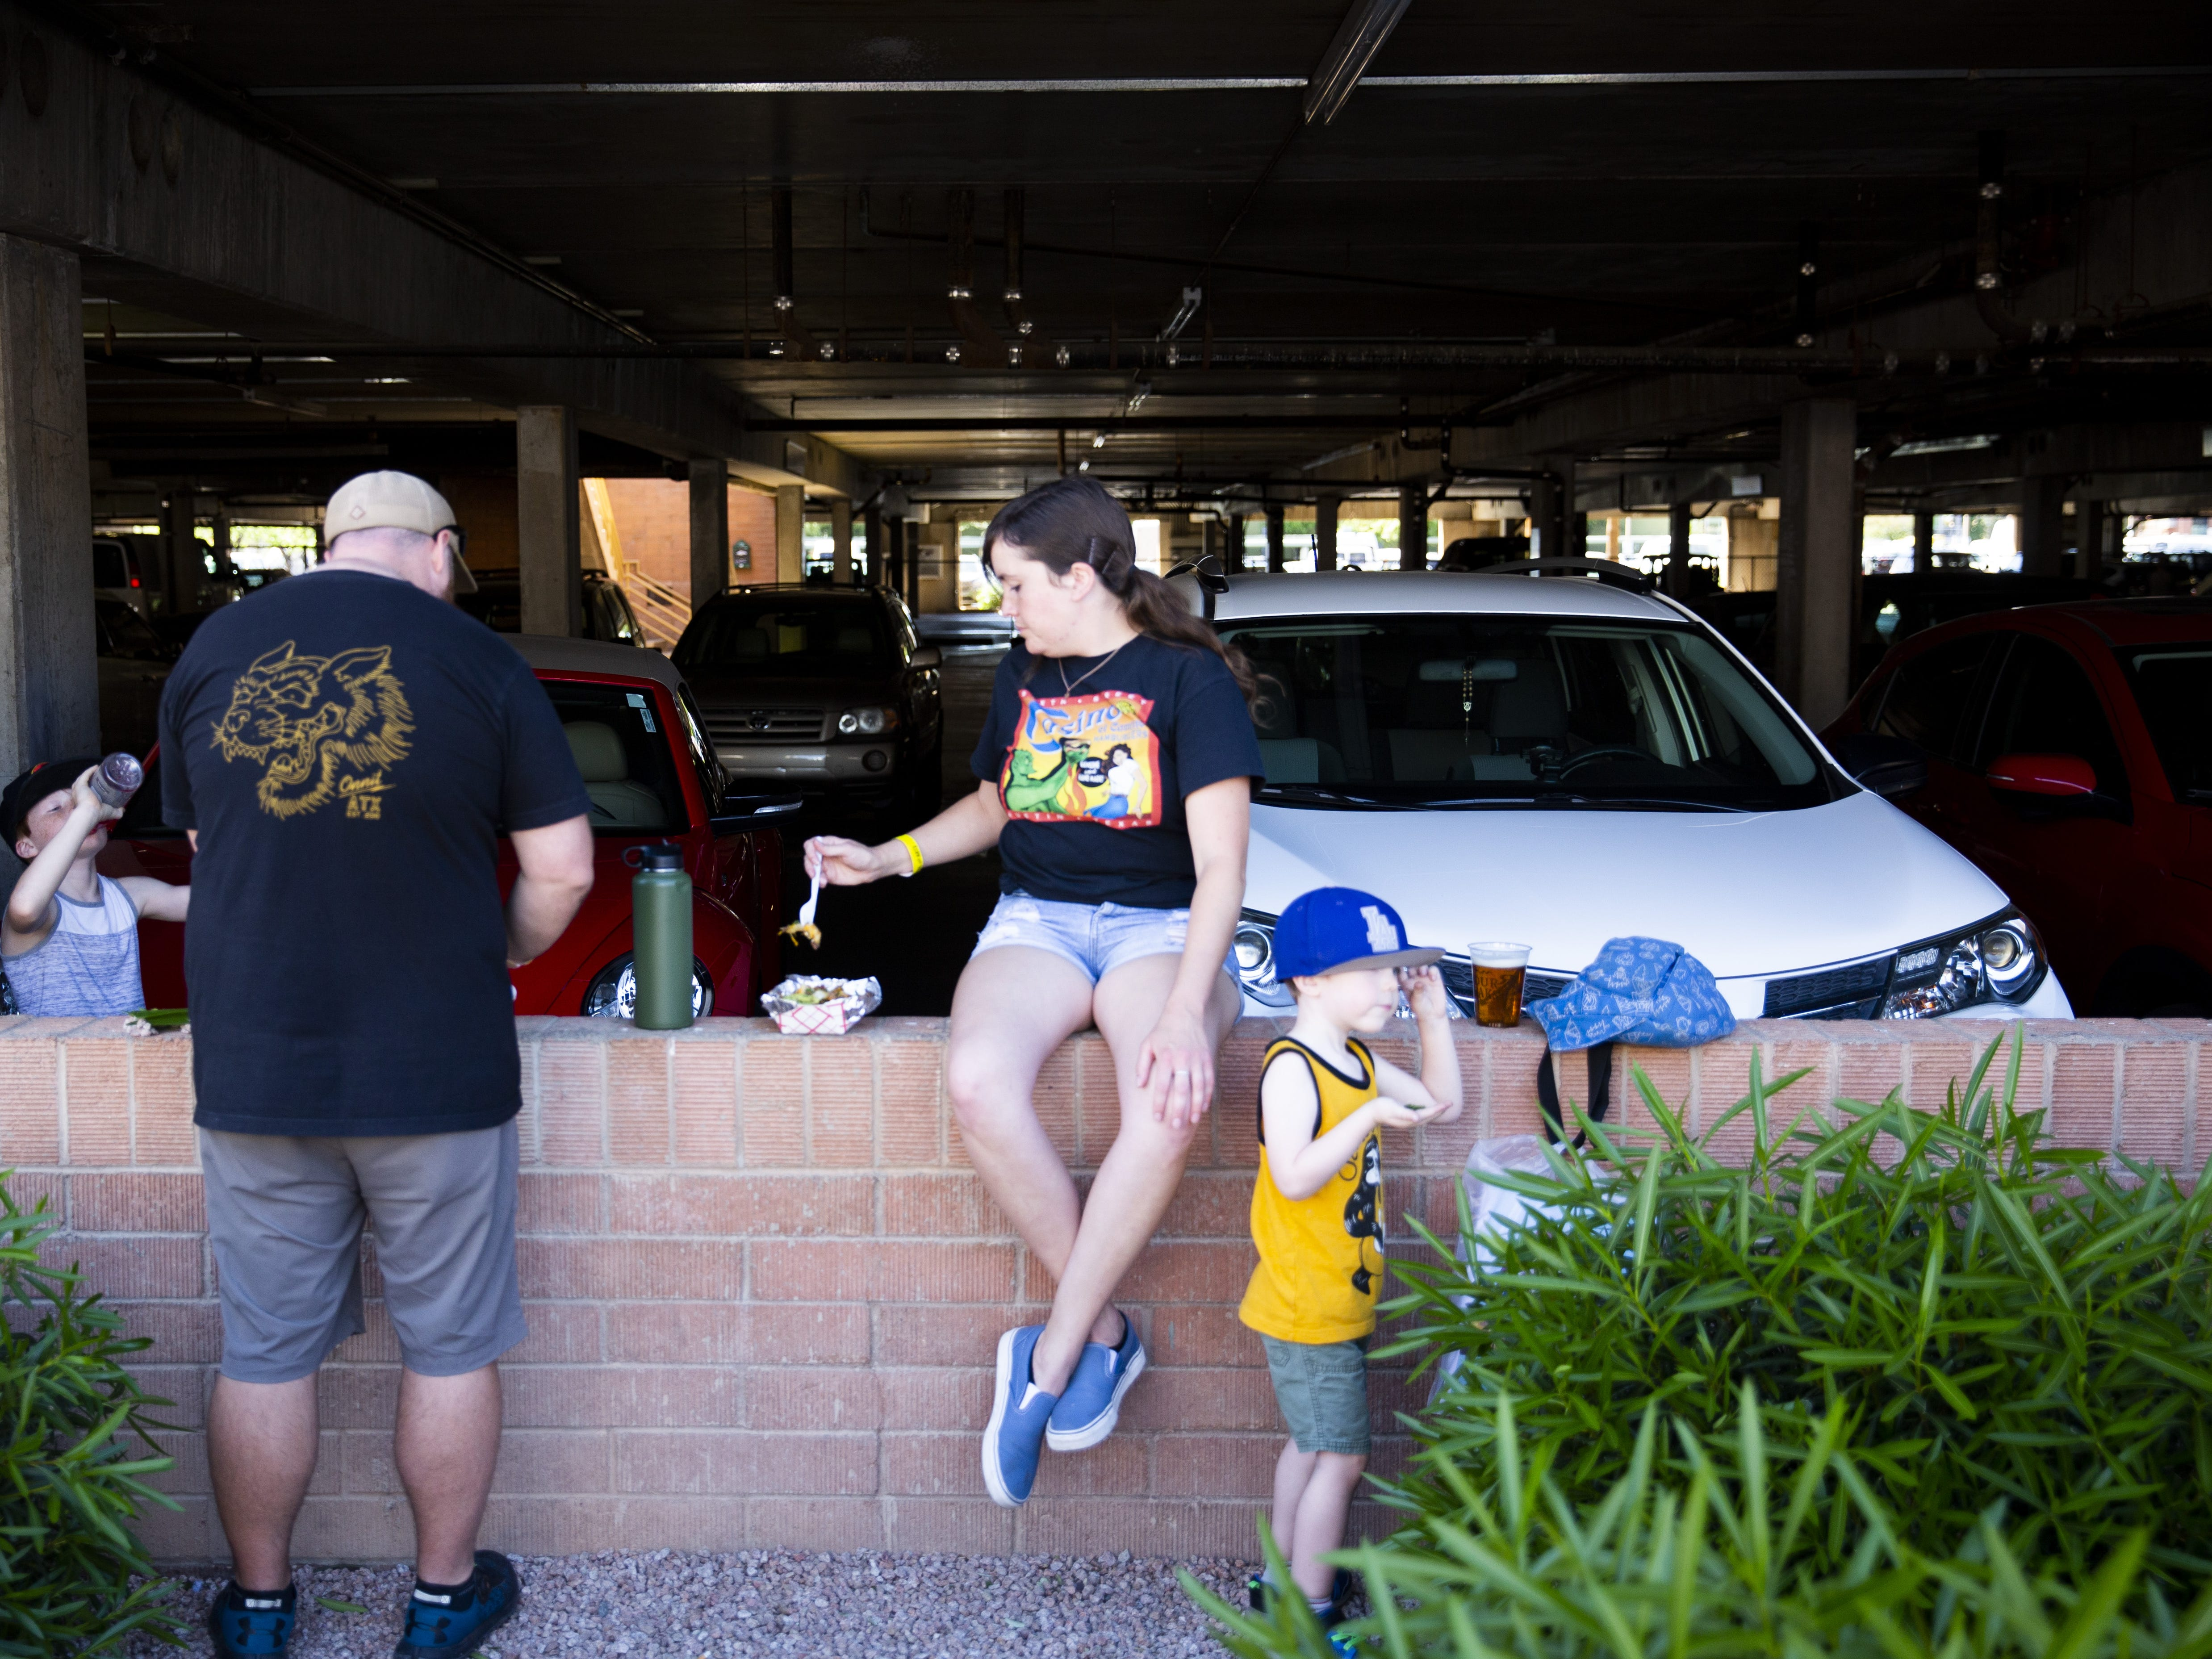 A family sits on the edge of a parking garage to eat lunch during the Spring Tempe Festival of the Arts in downtown Tempe on March 30, 2019.